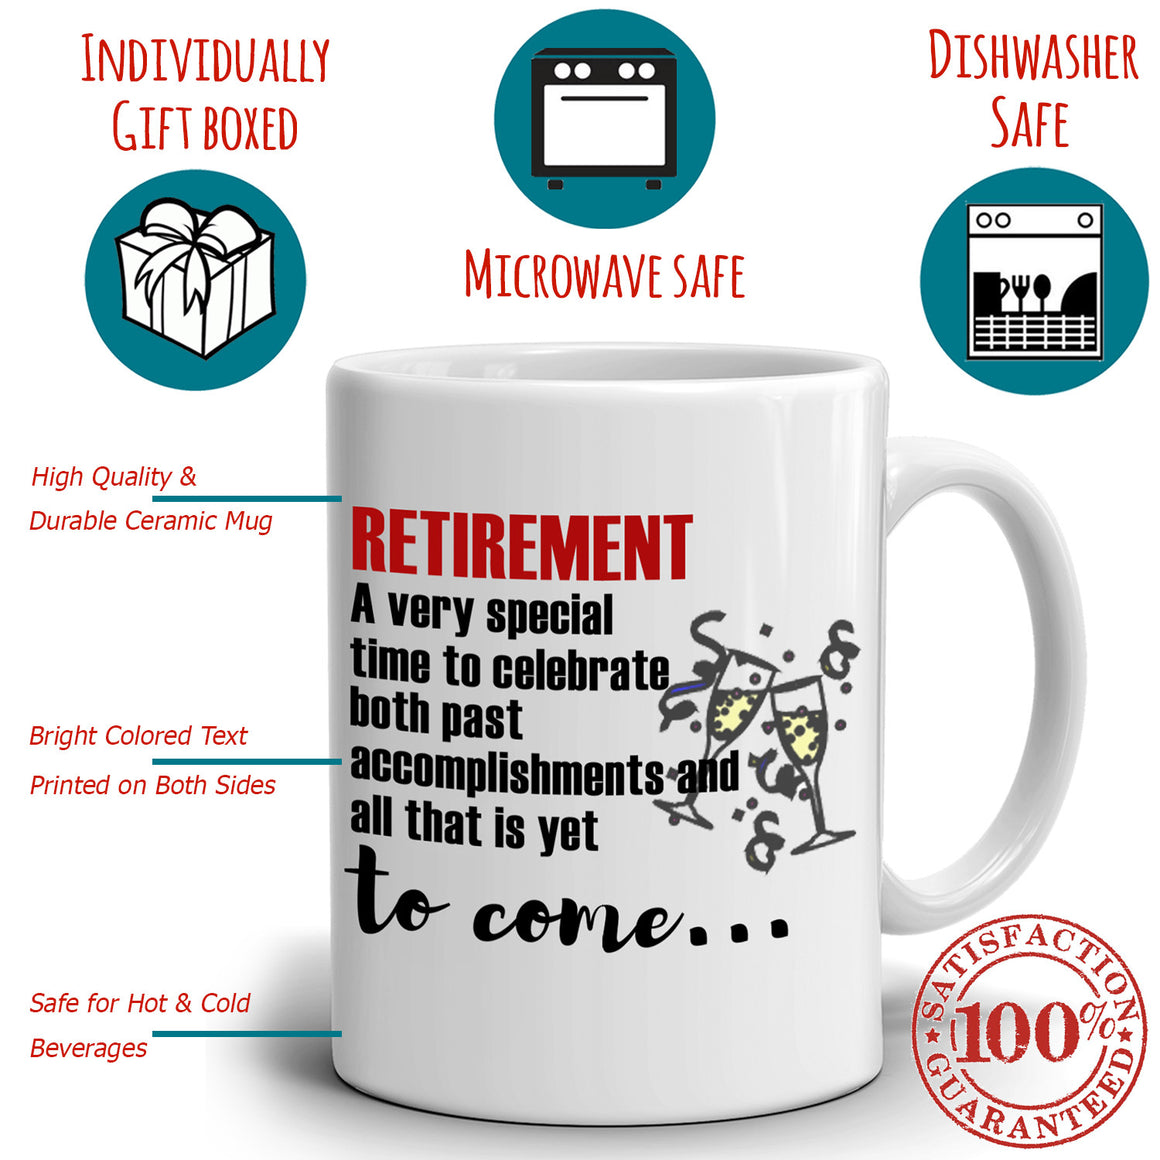 Inspirational Retirement Gift for Retired Coworkers Boss Men and Women Retirees, Printed on Both Sides!